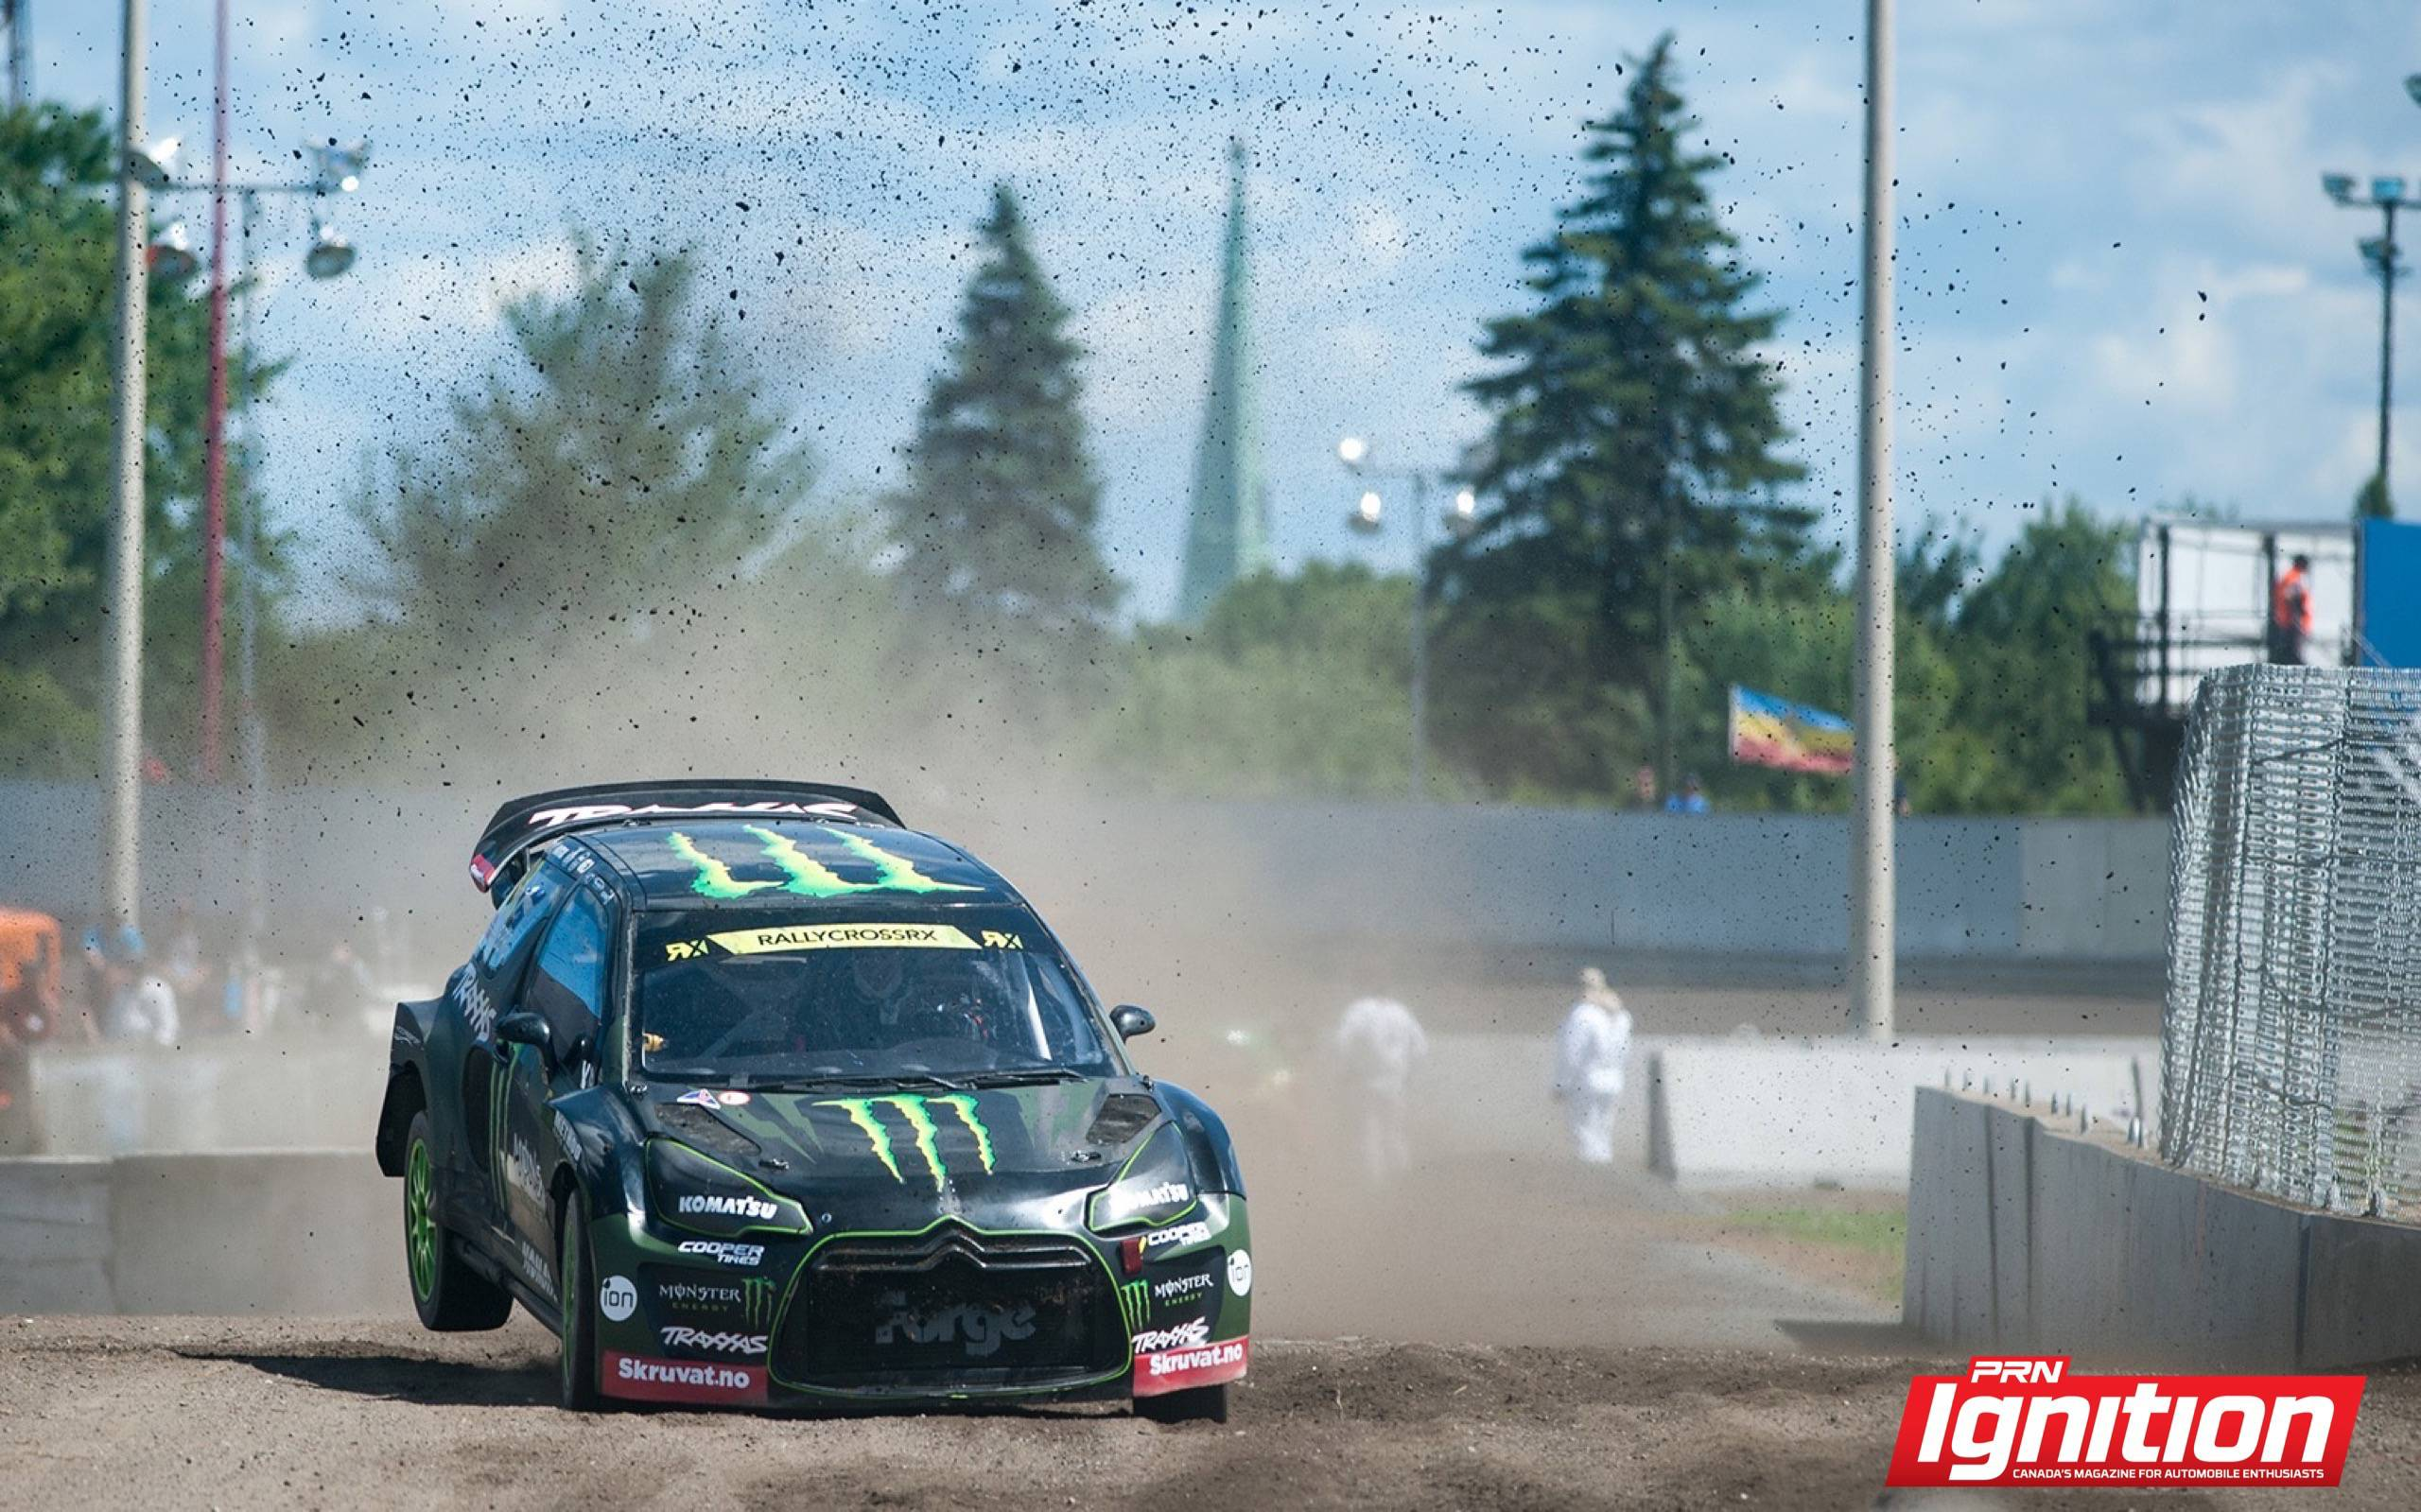 Rally-X Continues Global Assault